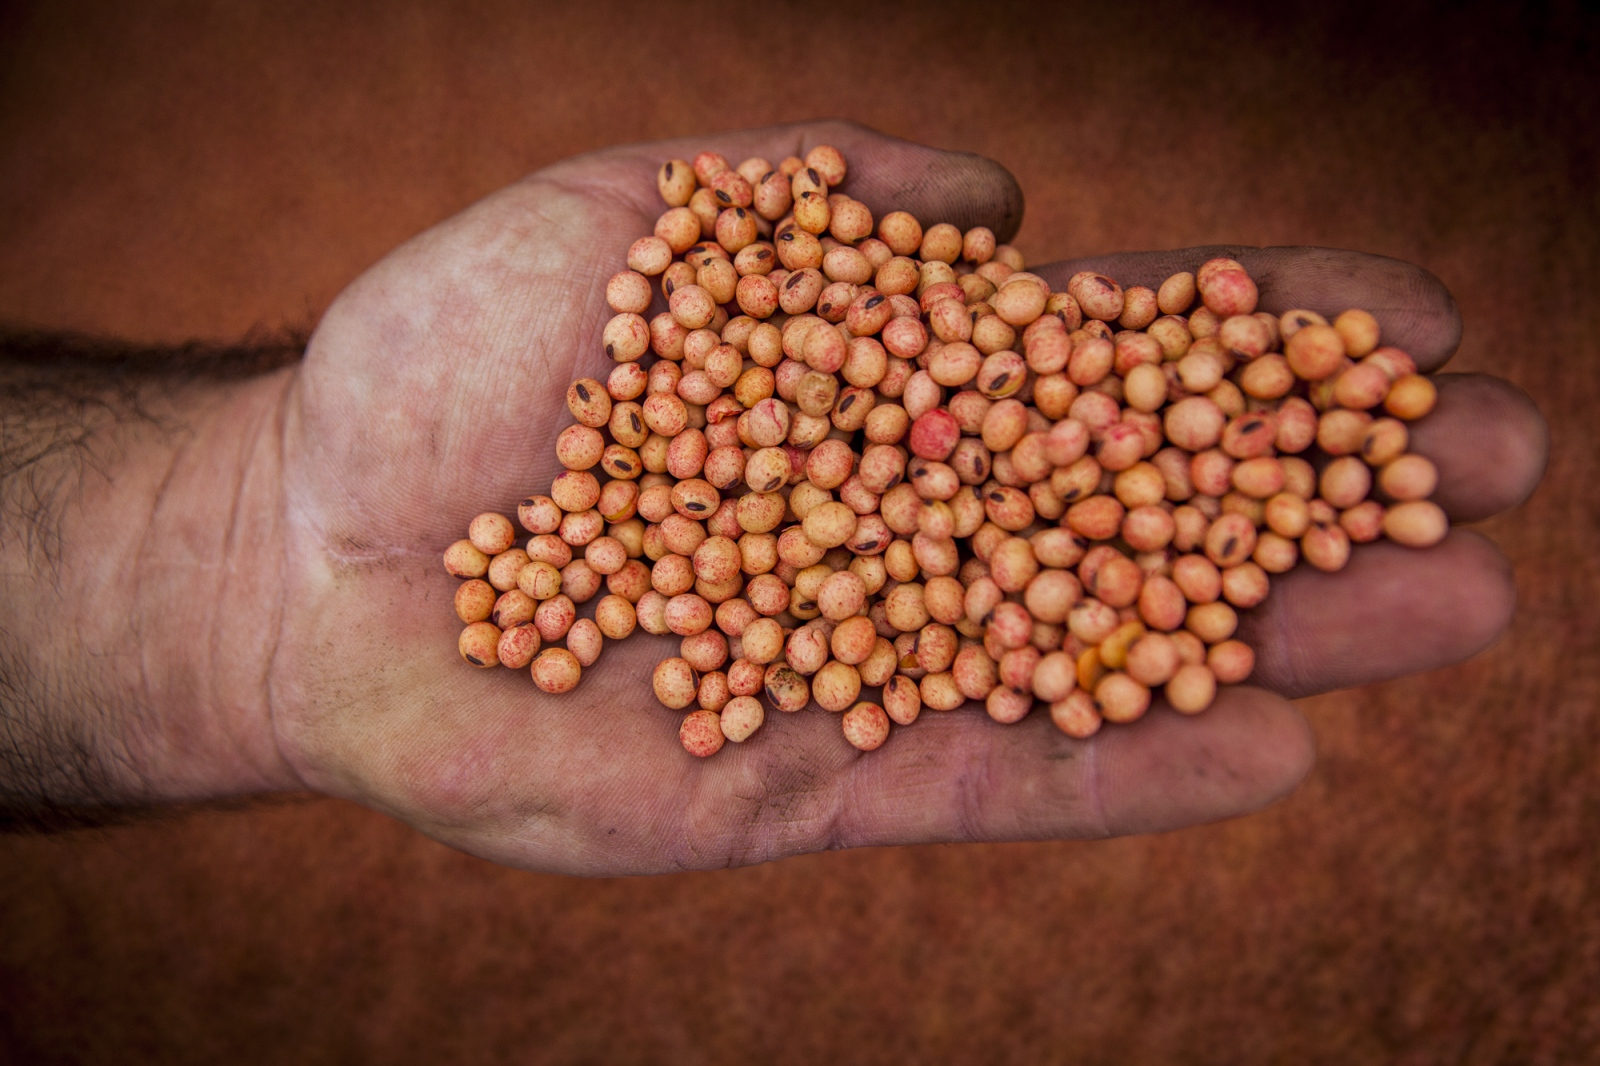 Mr. Domingos (39) holds soy seeds. This soy seeds are genetic modified and are able to resist to pesticides like glyphosate, which is used to killed all the other weeds and plants on the fields. The use of glyphosate is causing wide environmental and public health problems.